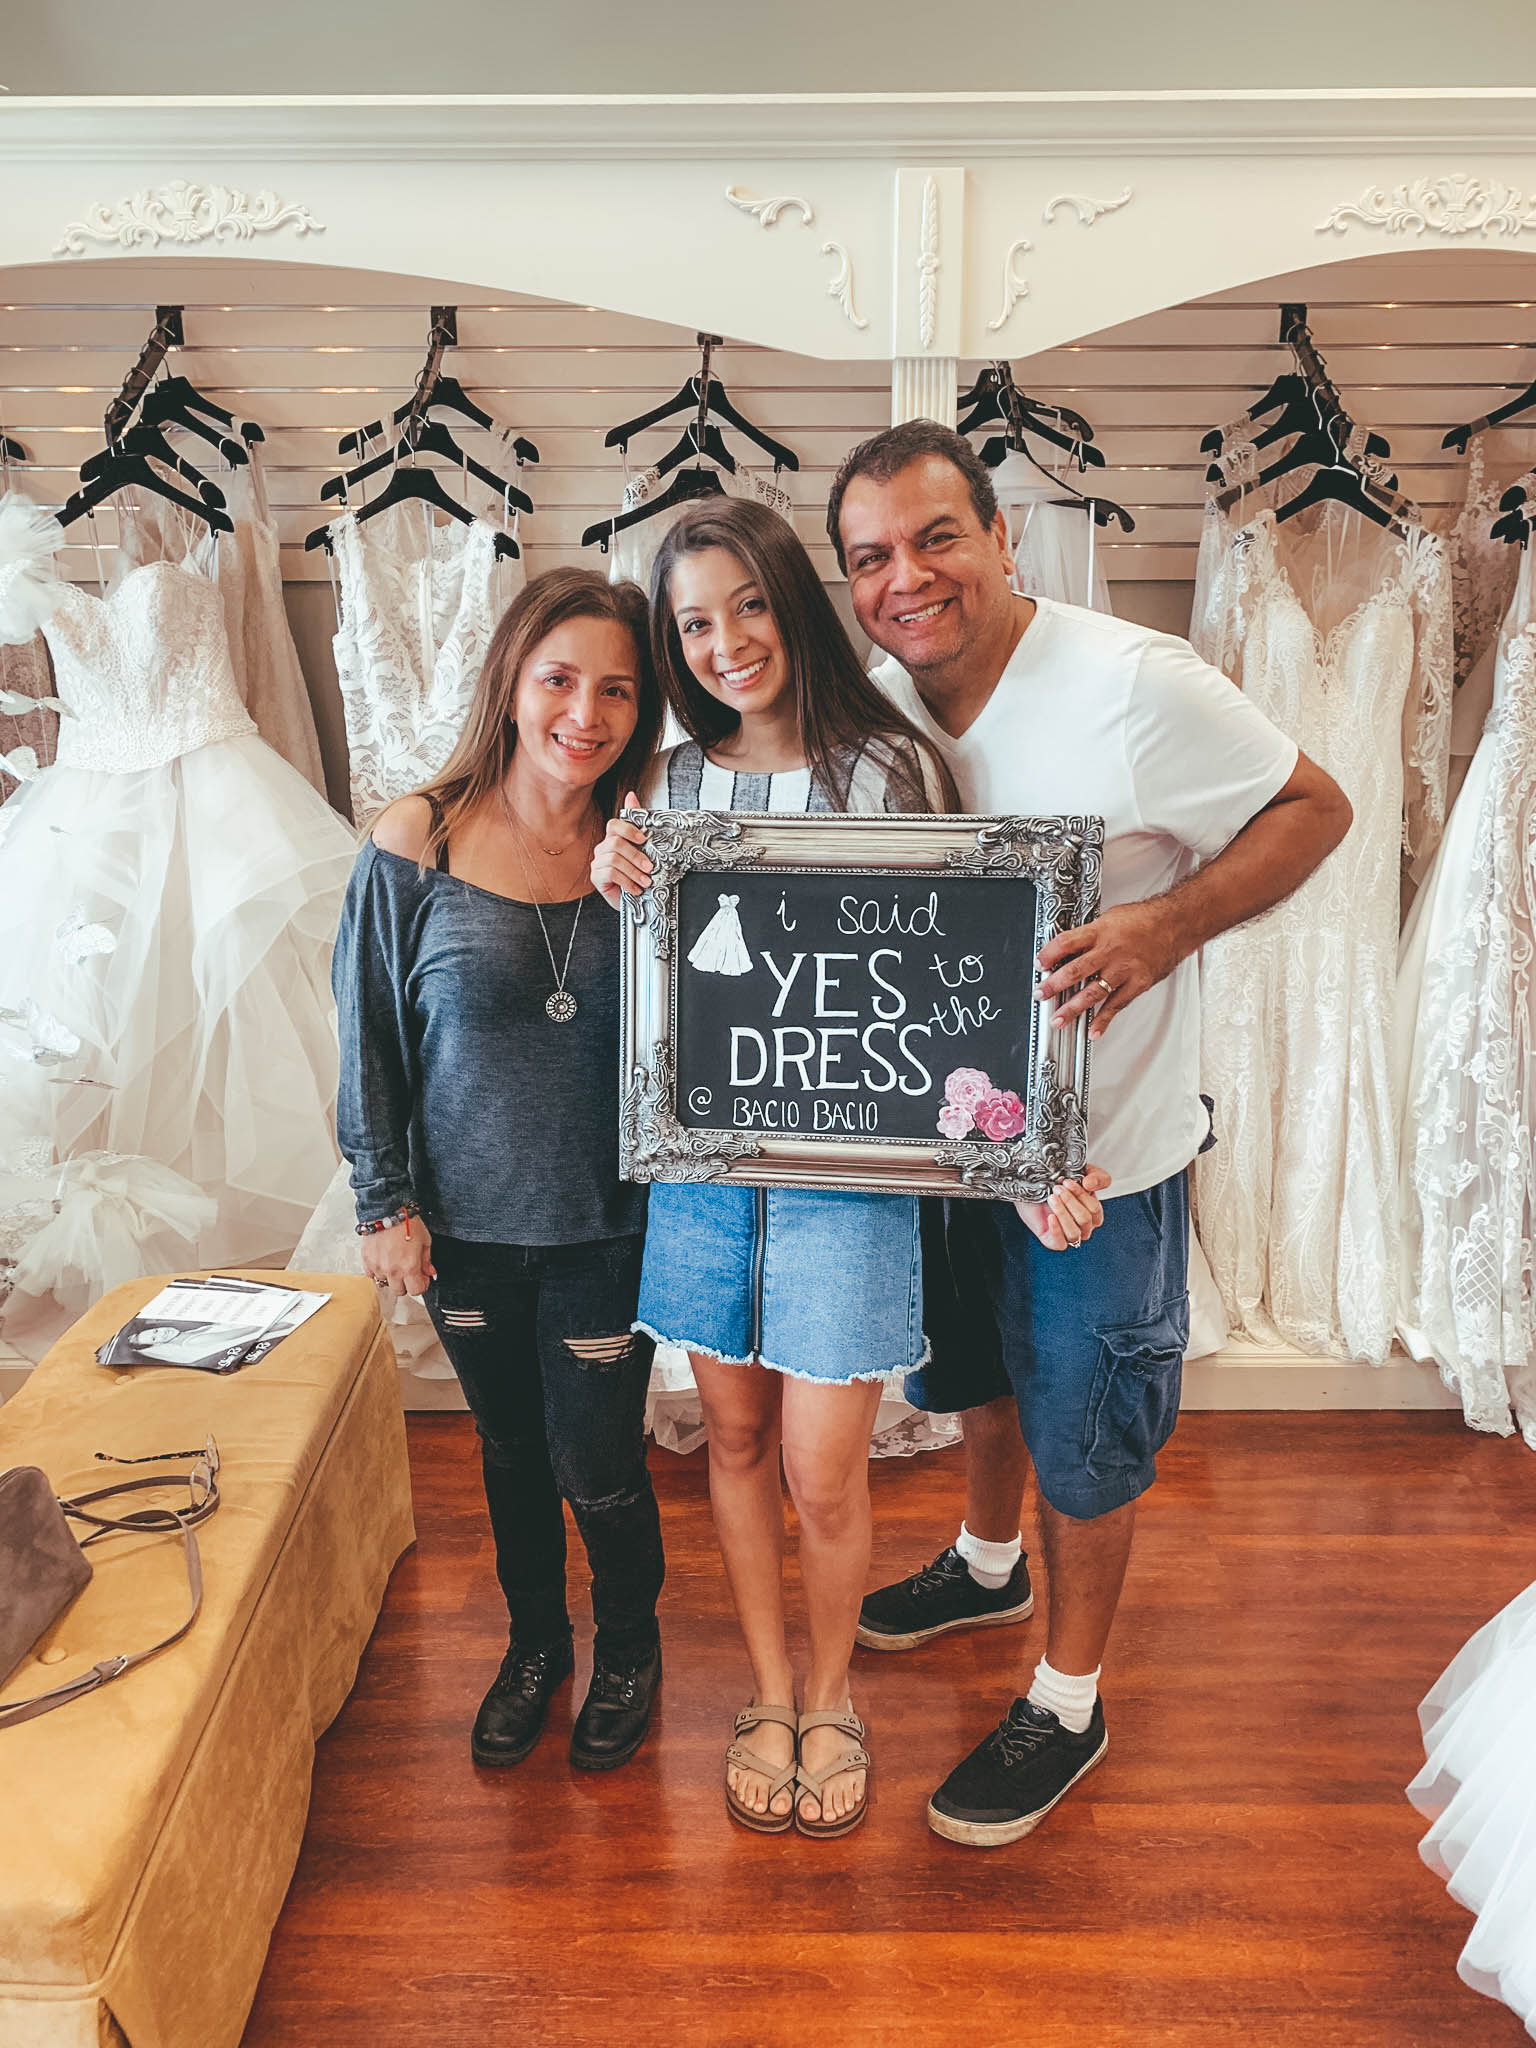 My Top 8 Tips for any First Time Wedding Dress Shoppers